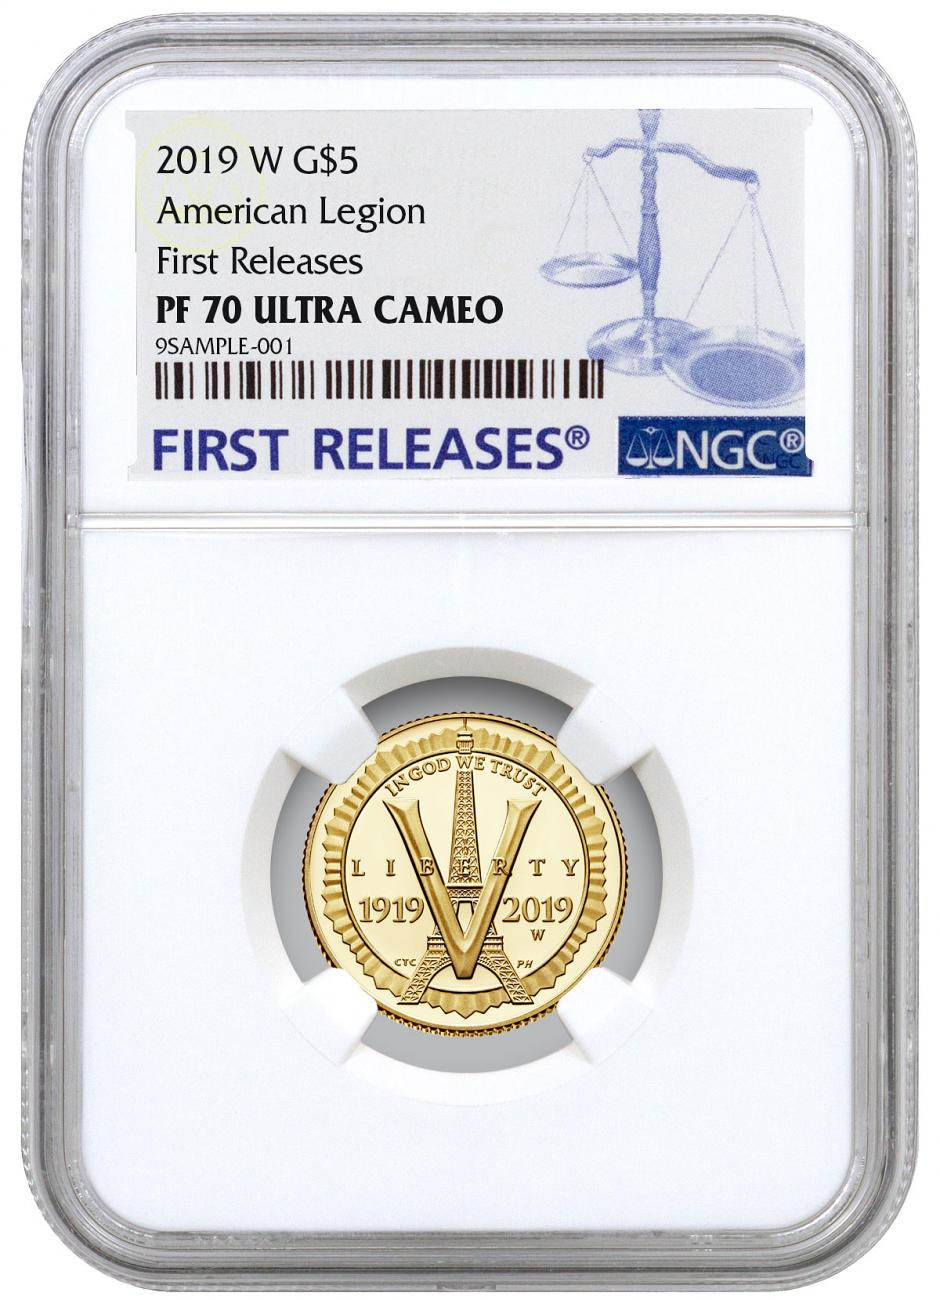 2019-W American Legion 100th Anniversary $5 Gold Commemorative Proof Coin NGC PF70 UC FR